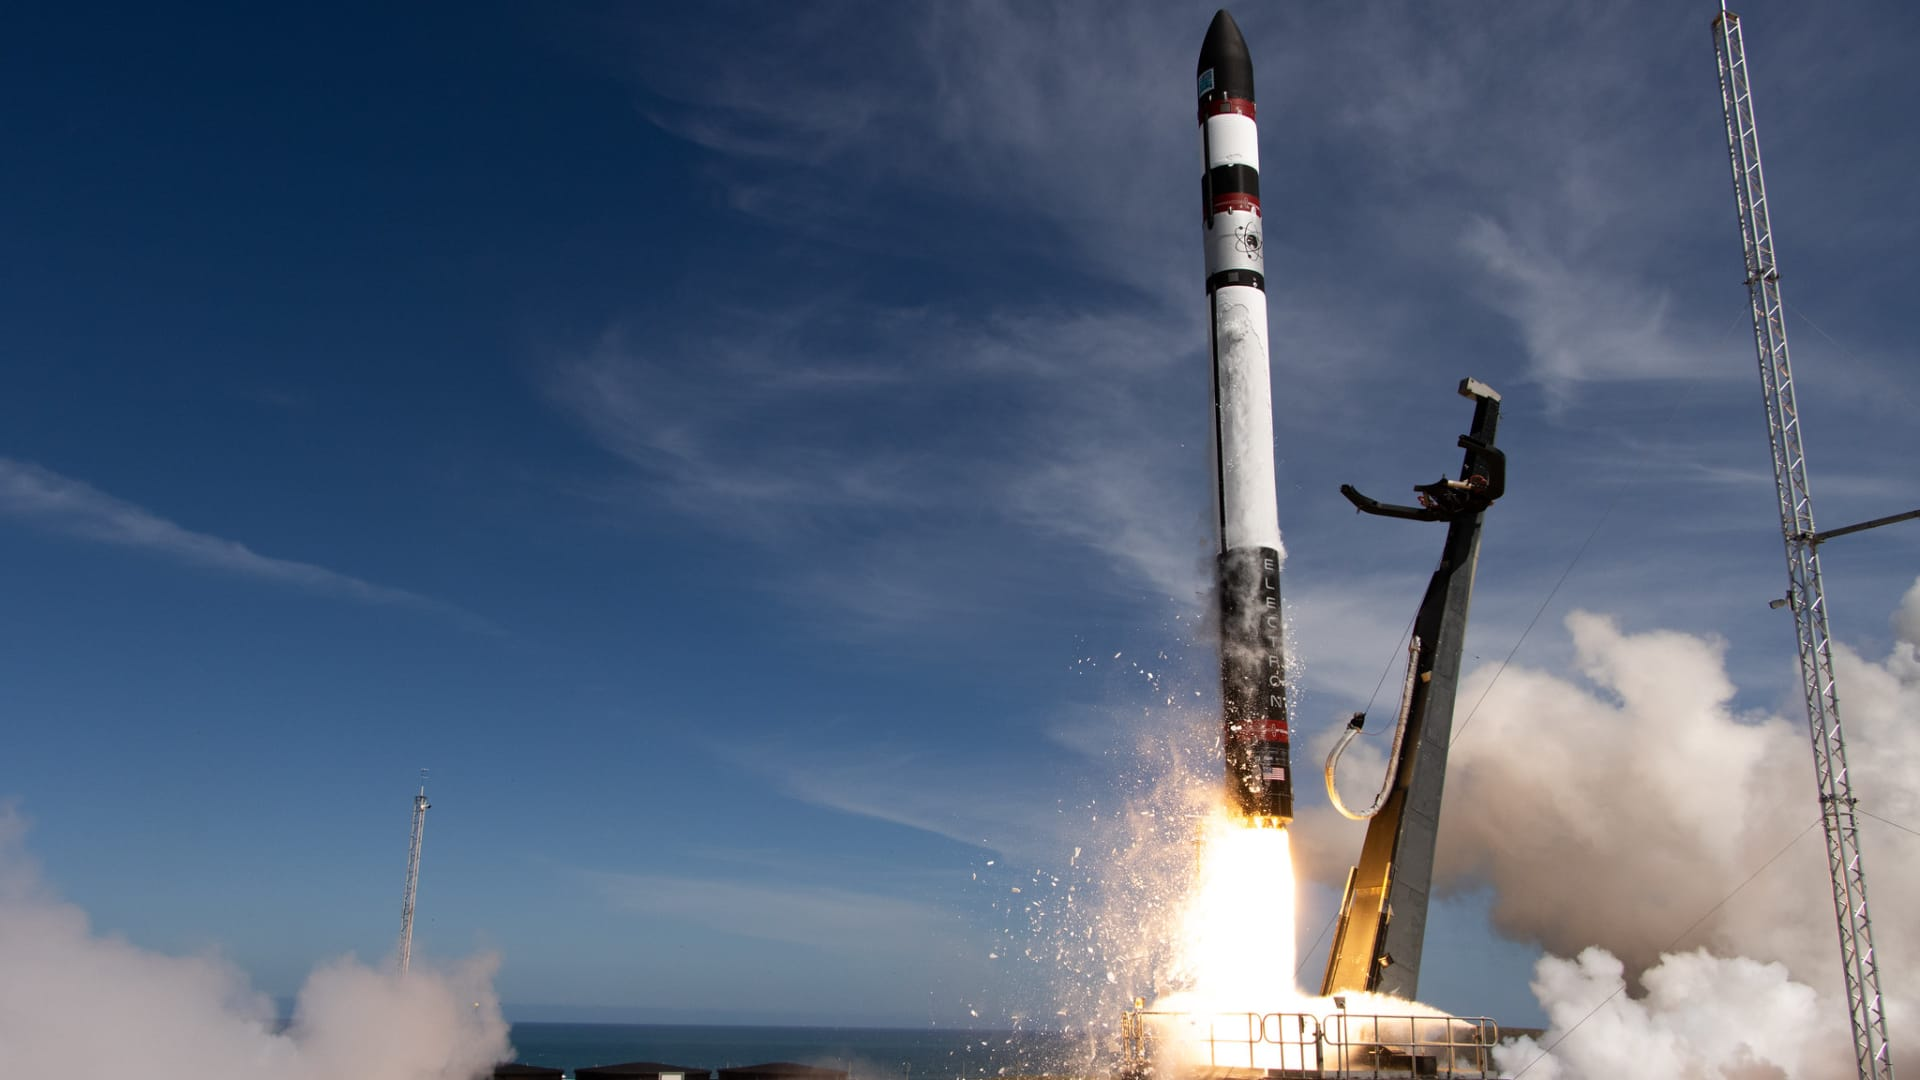 The 16th Electron launch in November 2020, when the company recovered the rocket after splashdown for the first time.